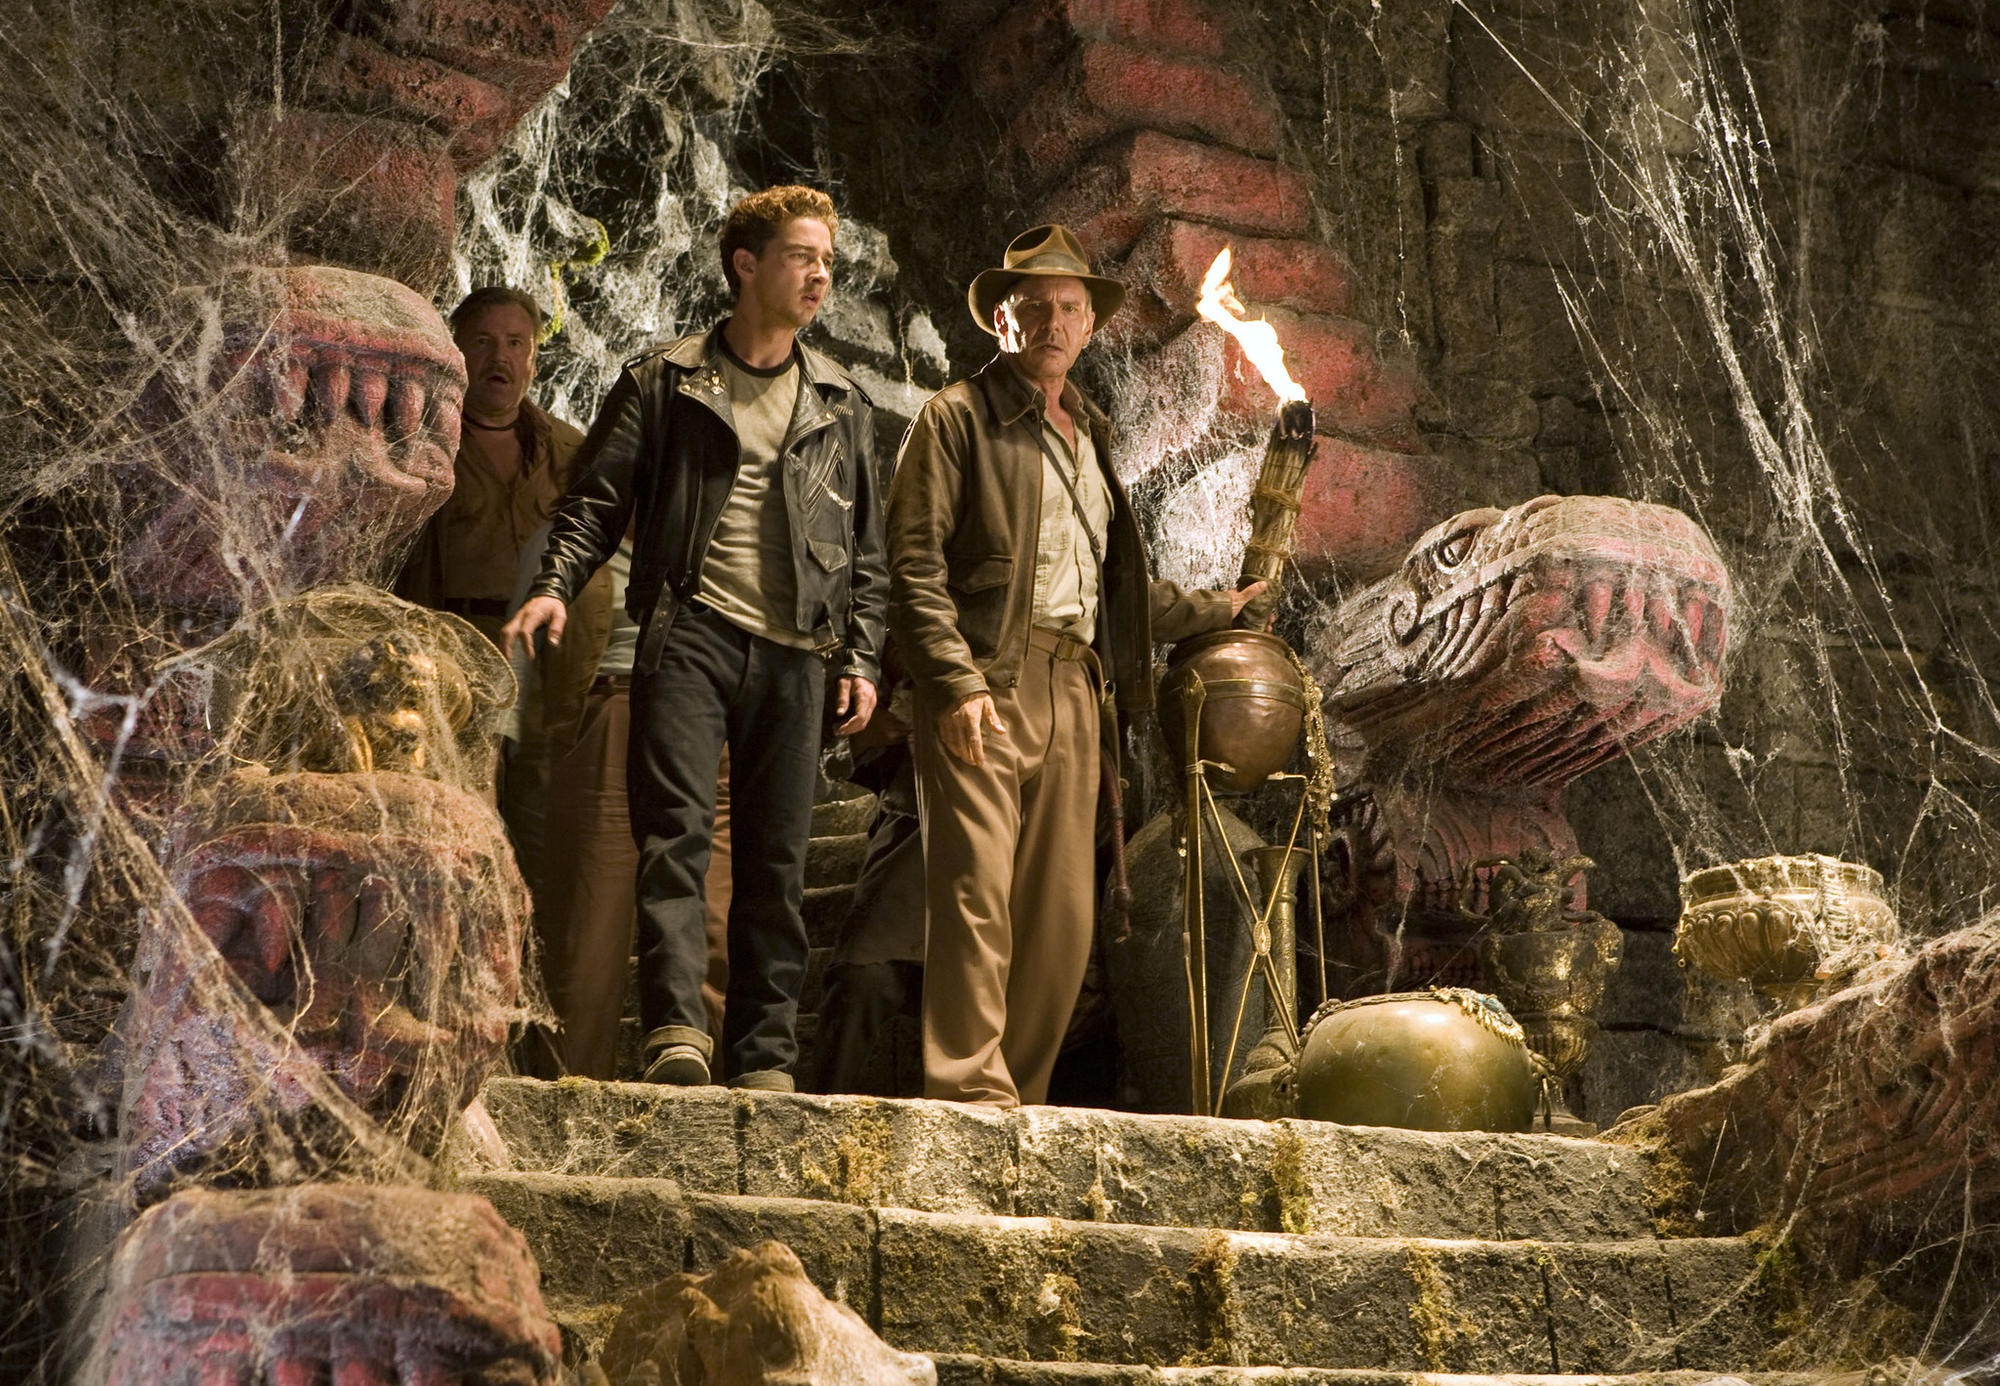 'Indiana Jones and the Kingdom of the Crystal Skull'